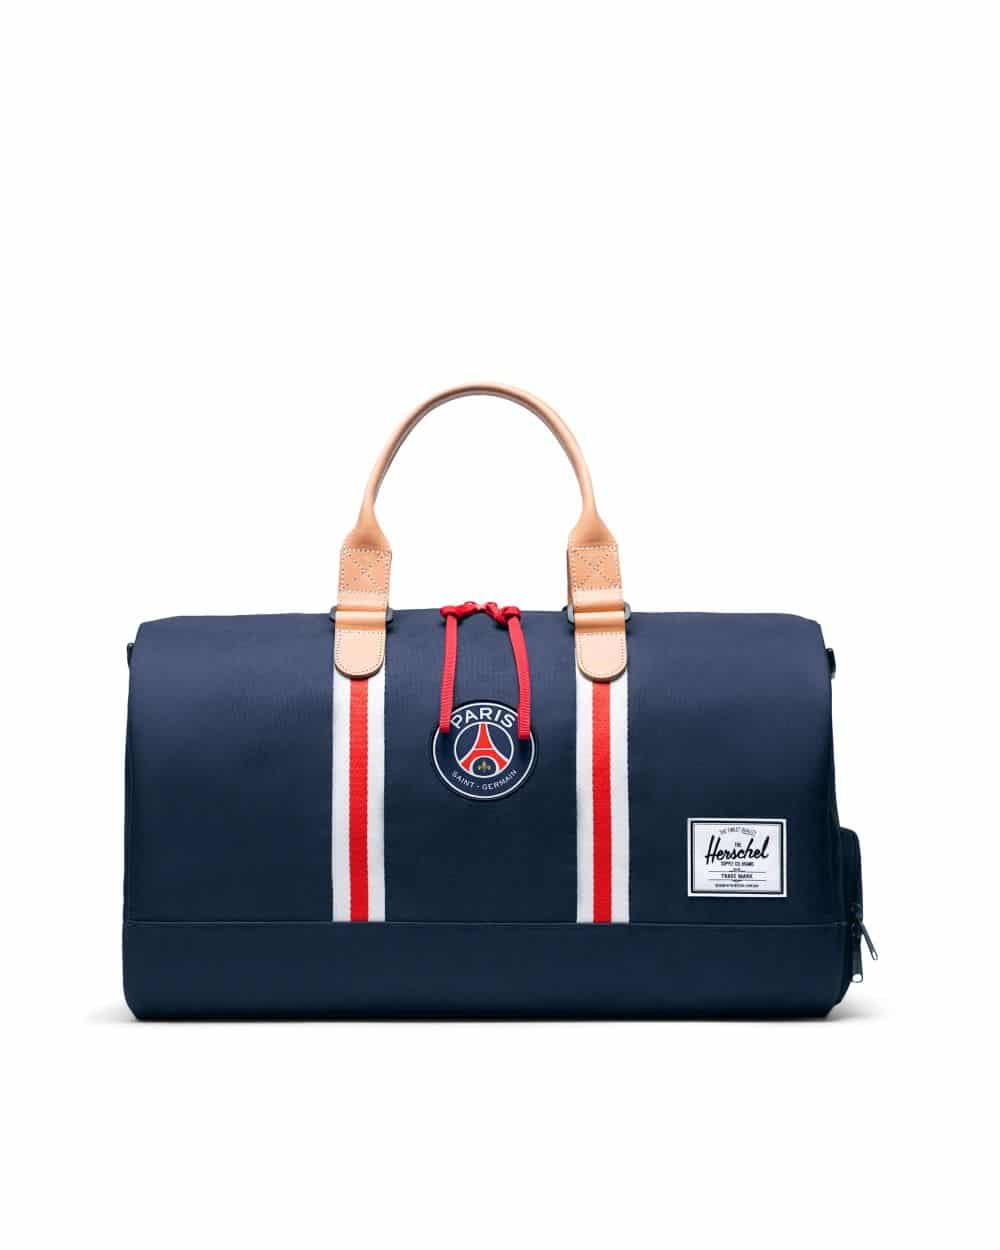 Novel duffle PSG by Herschel Supplies